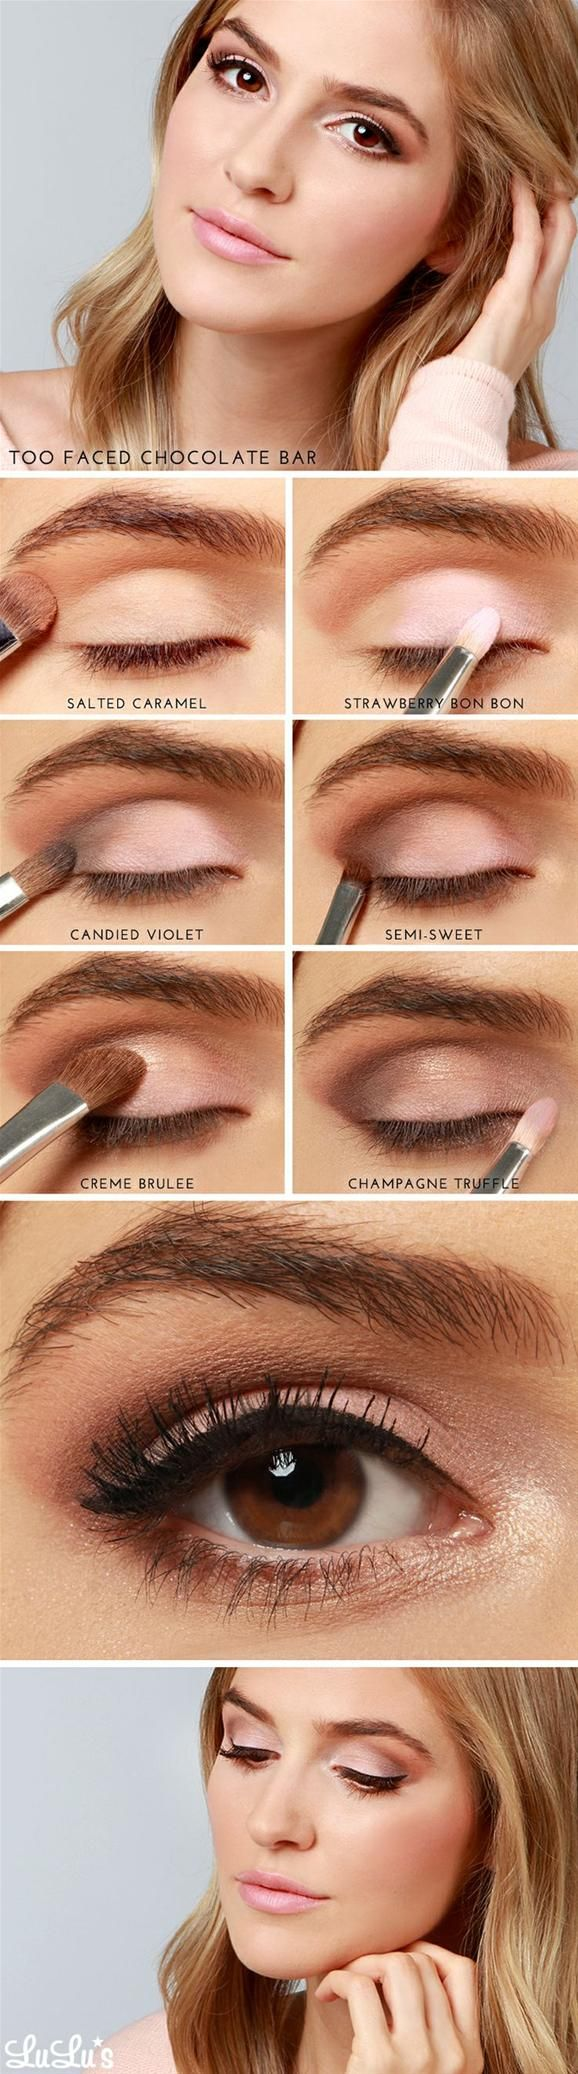 Smoky Eye Makeup Tutorial - Head over to Pampadour.com for product suggestions!